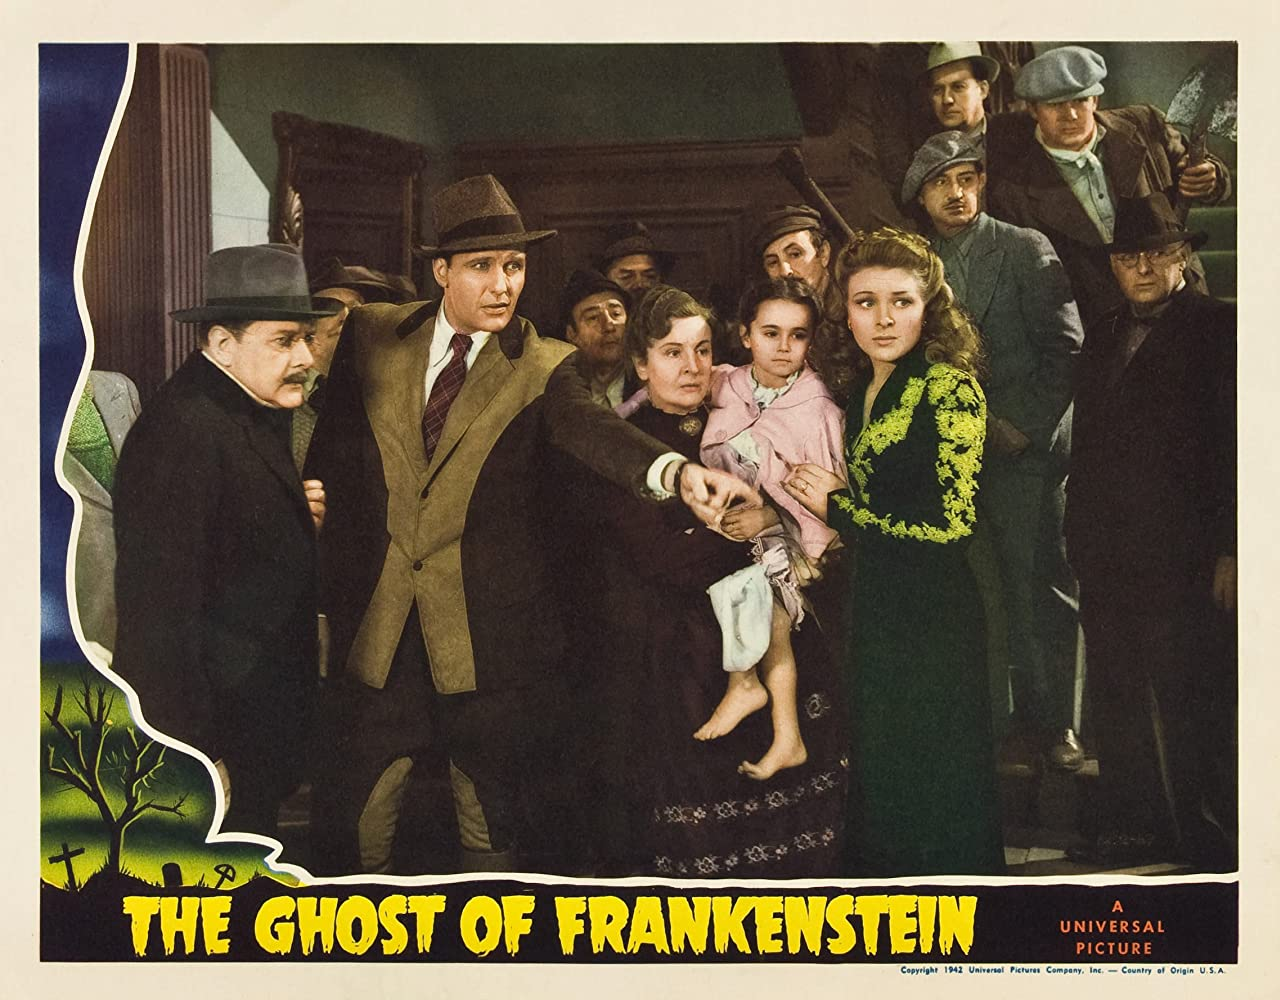 Ralph Bellamy, Evelyn Ankers, Janet Ann Gallow, Olaf Hytten, and Doris Lloyd in The Ghost of Frankenstein (1942)